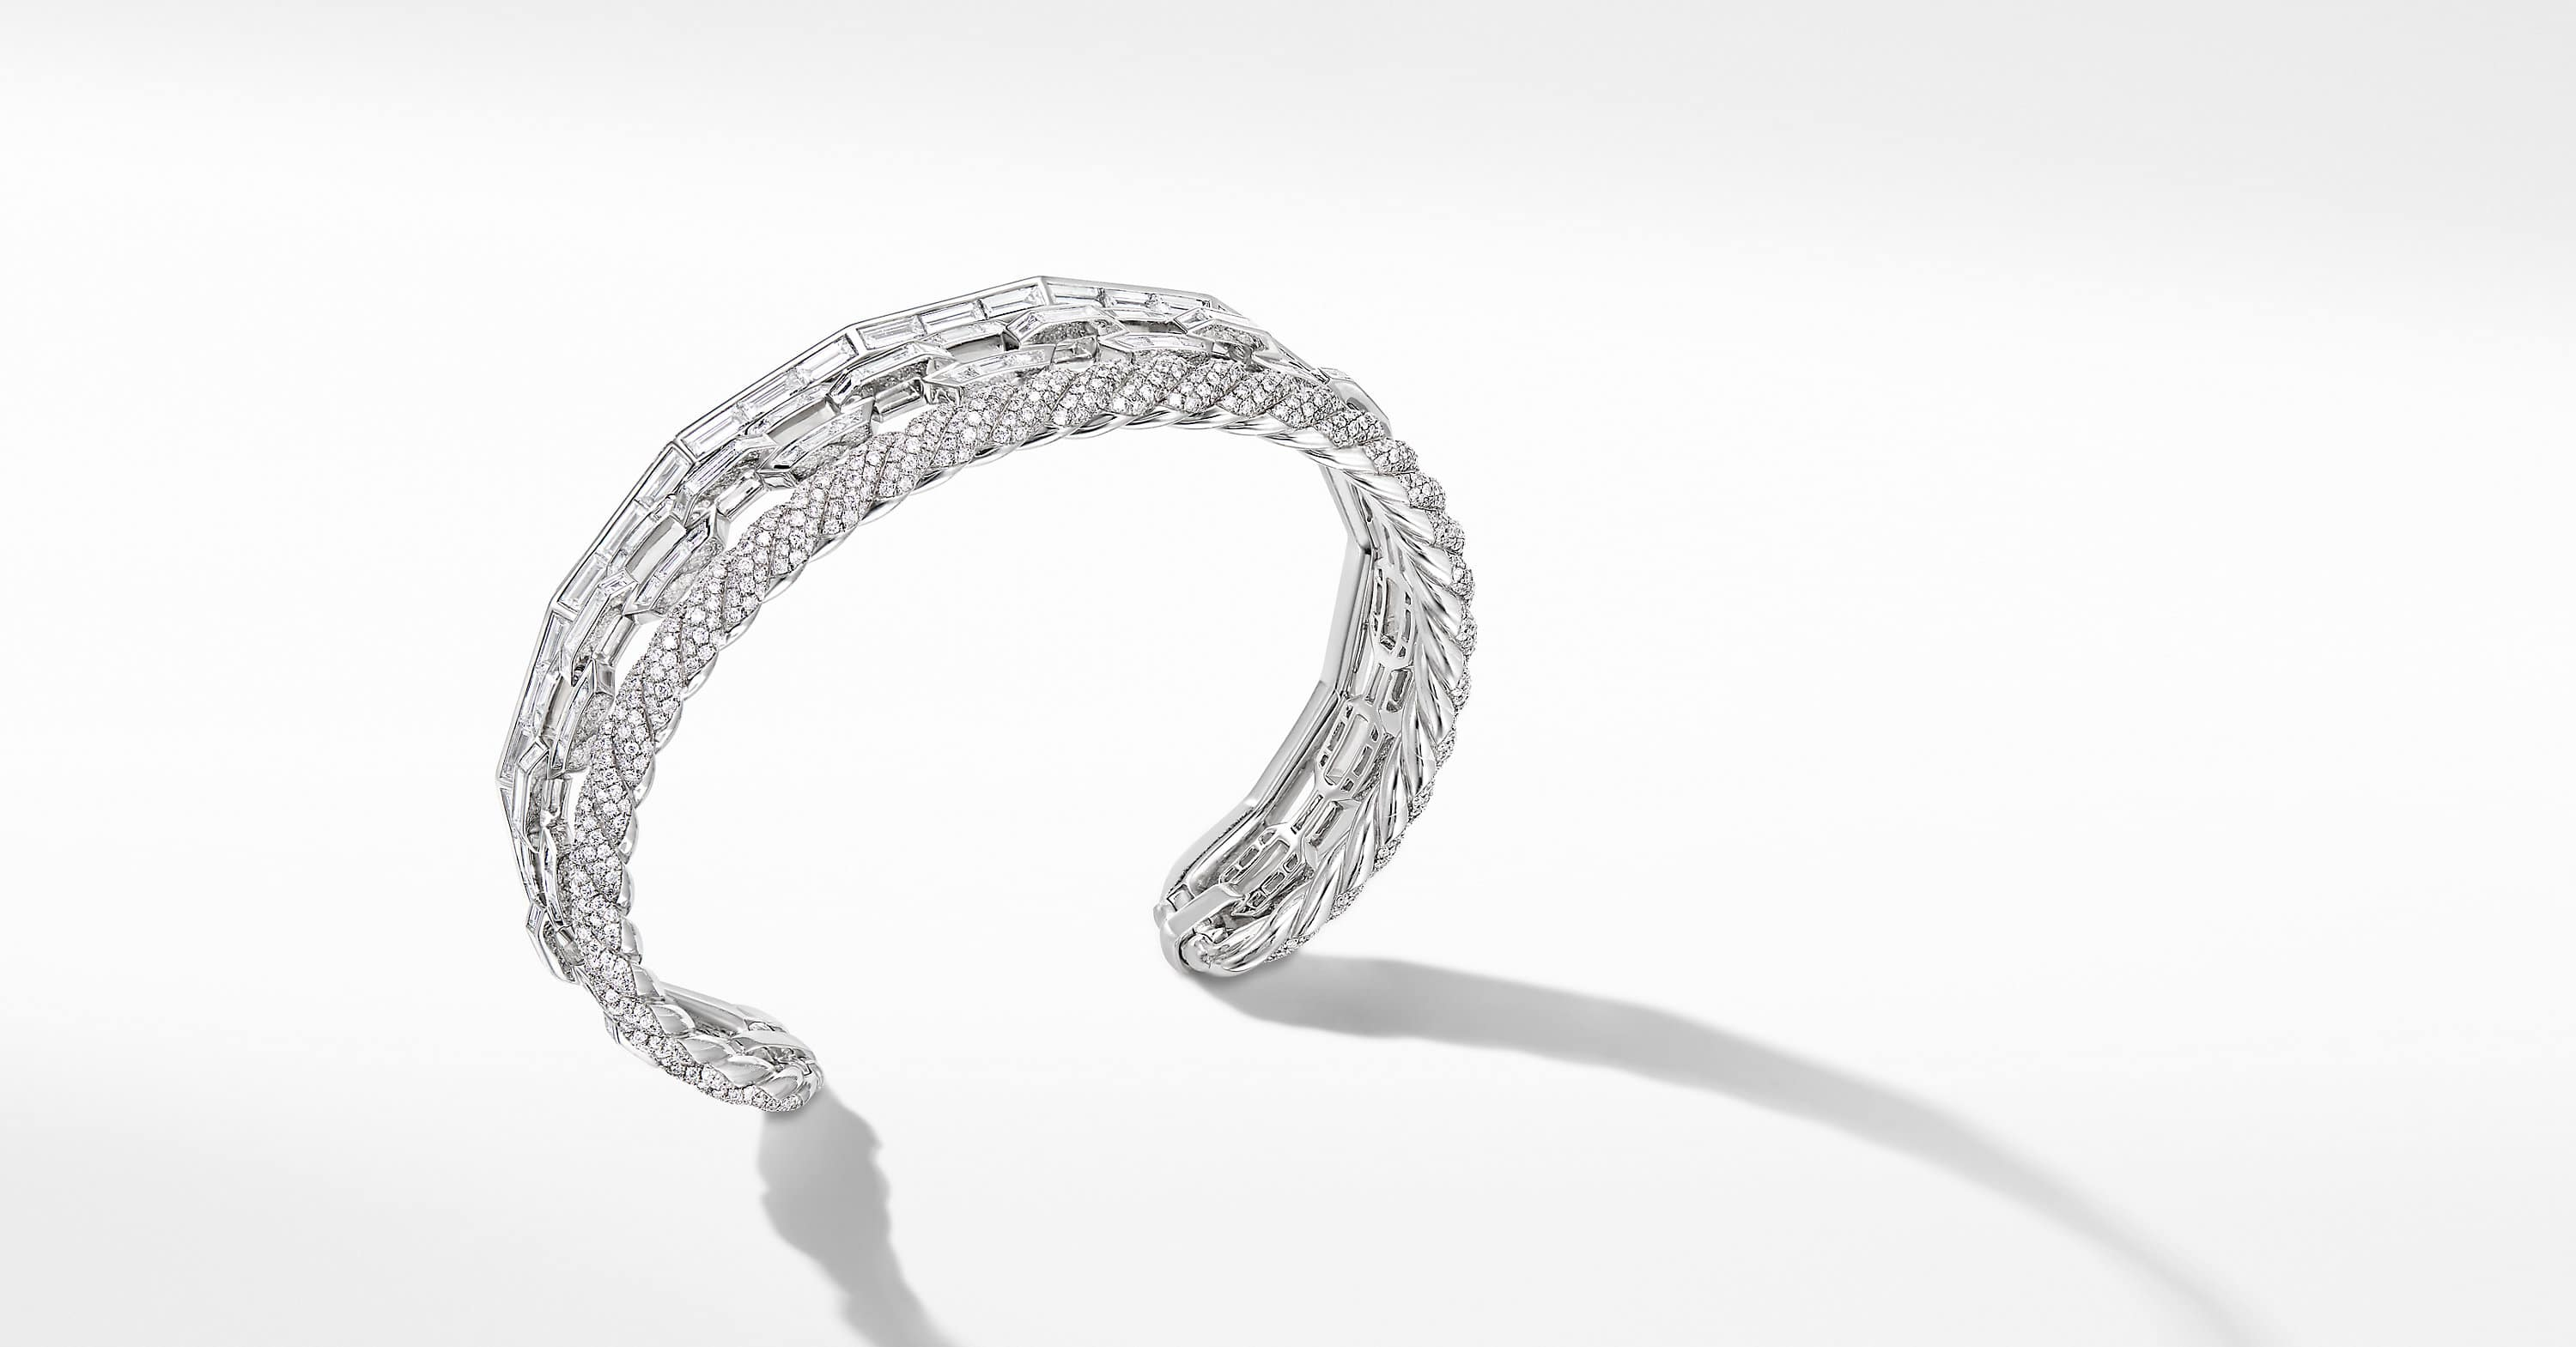 Stax Cuff Bracelet in White Gold with Diamonds